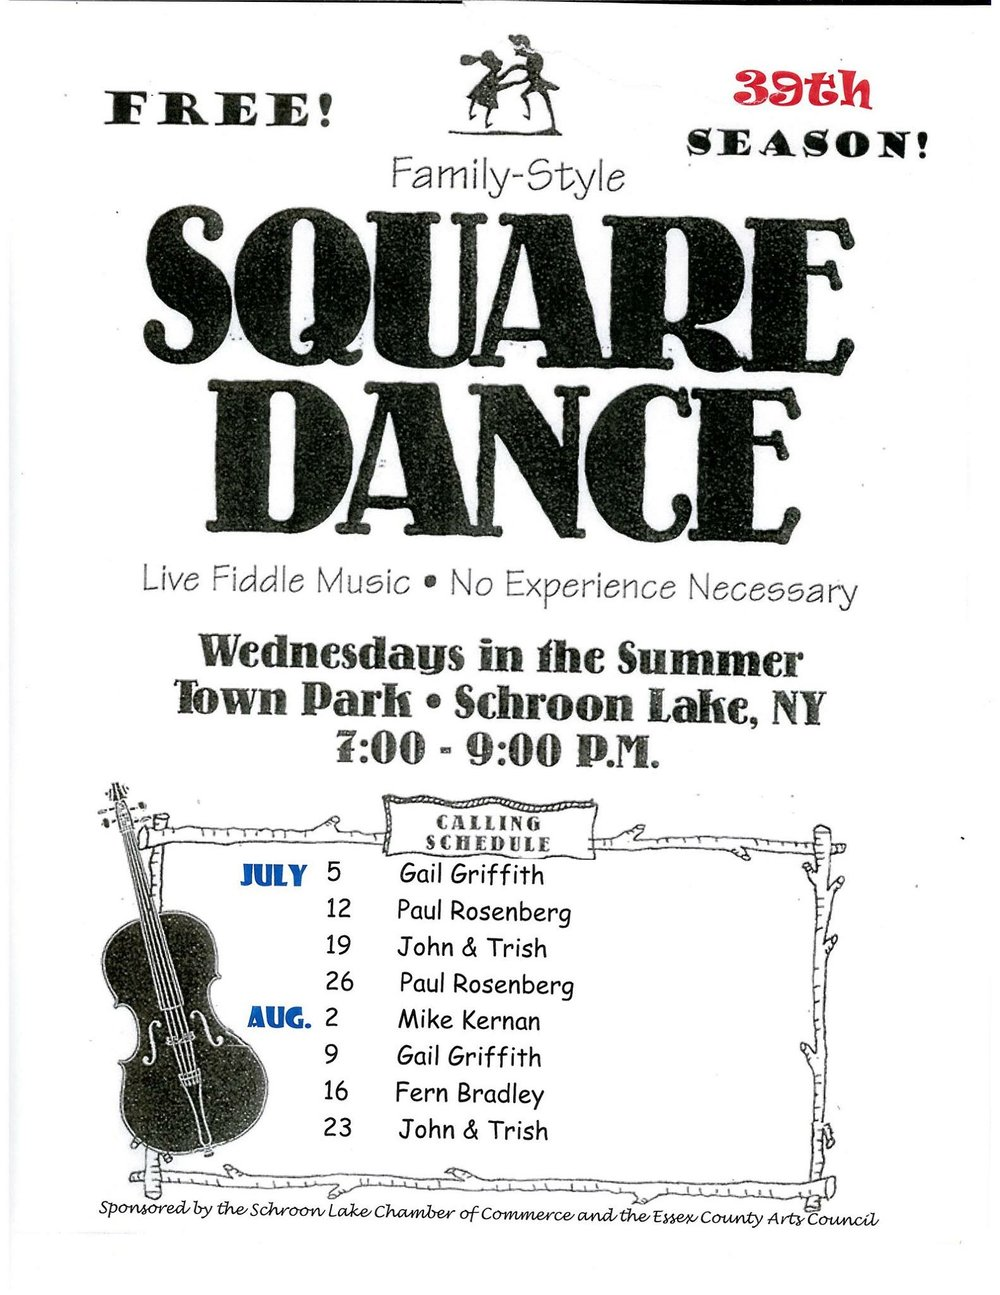 Gail Griffin calls next Wednesday's Dance. So save the date, only three chances left!